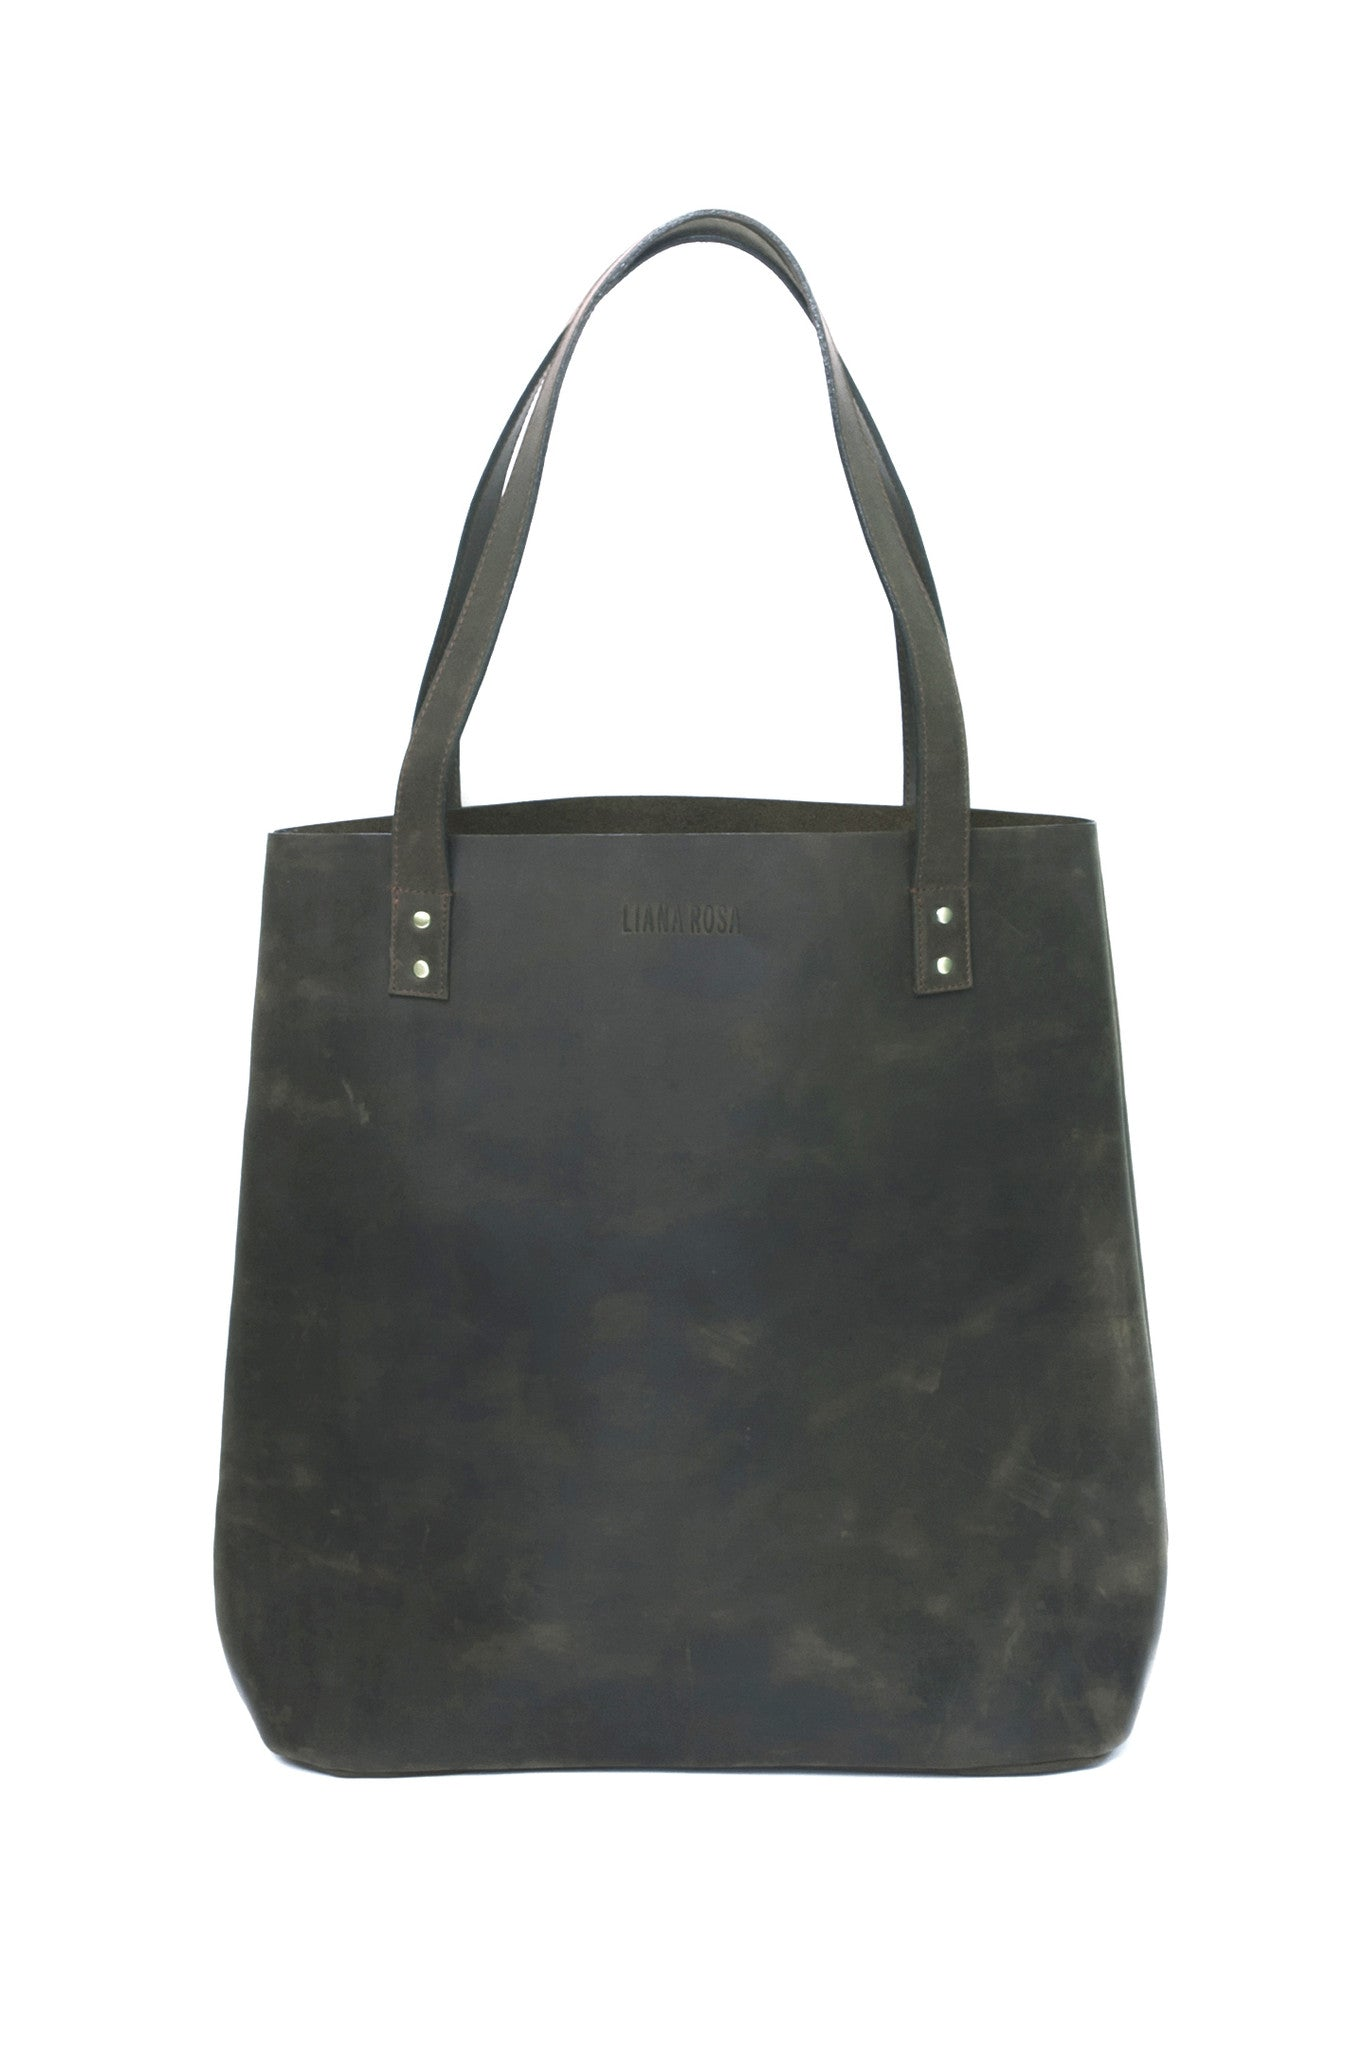 Henry Dusty Grey Leather Tote Bag by Liana Rosa